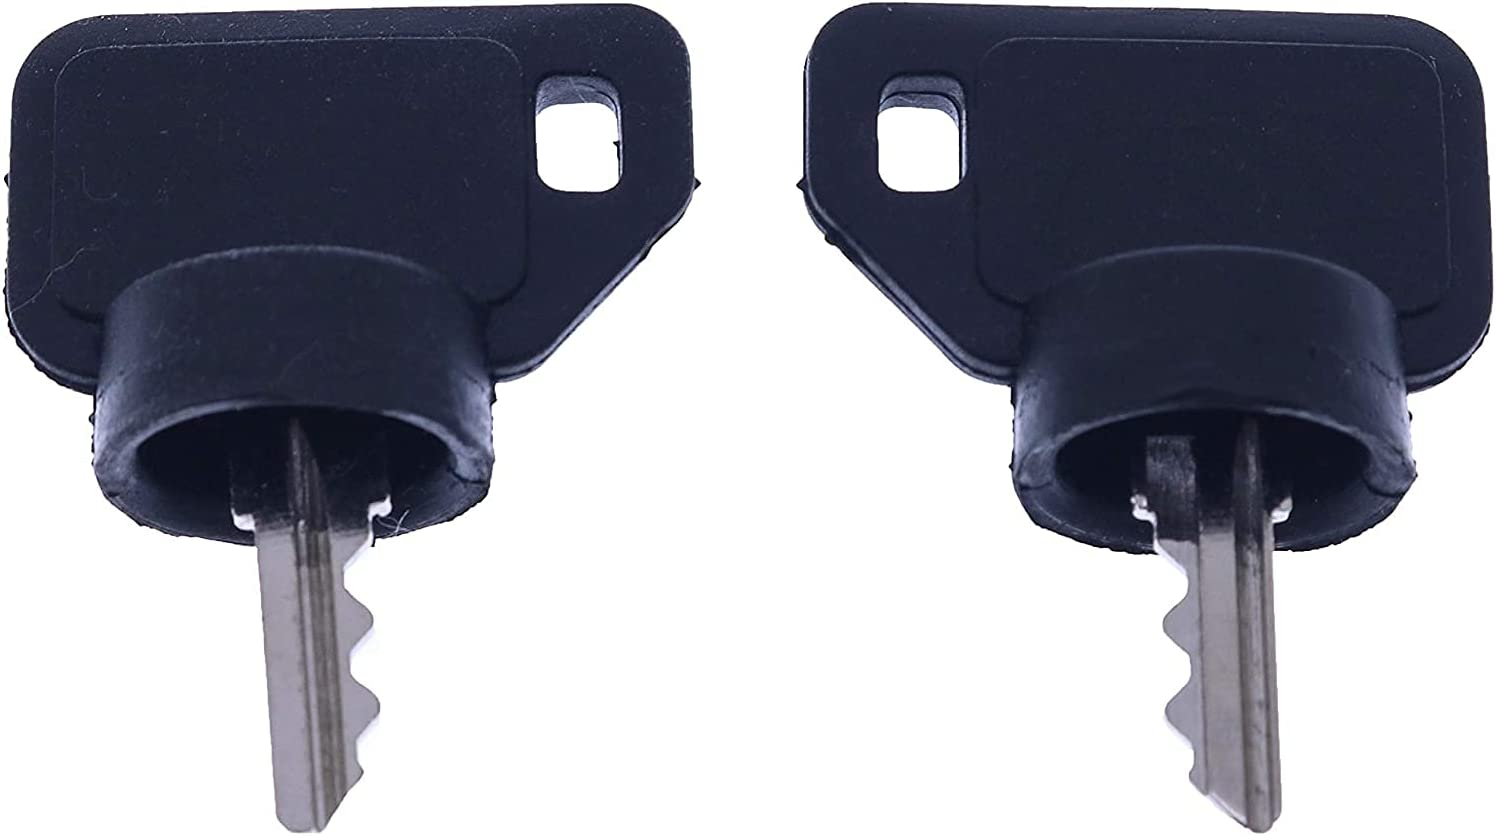 Ignition Switch Key 09287000 04331700 Compatible with Gravely Ar